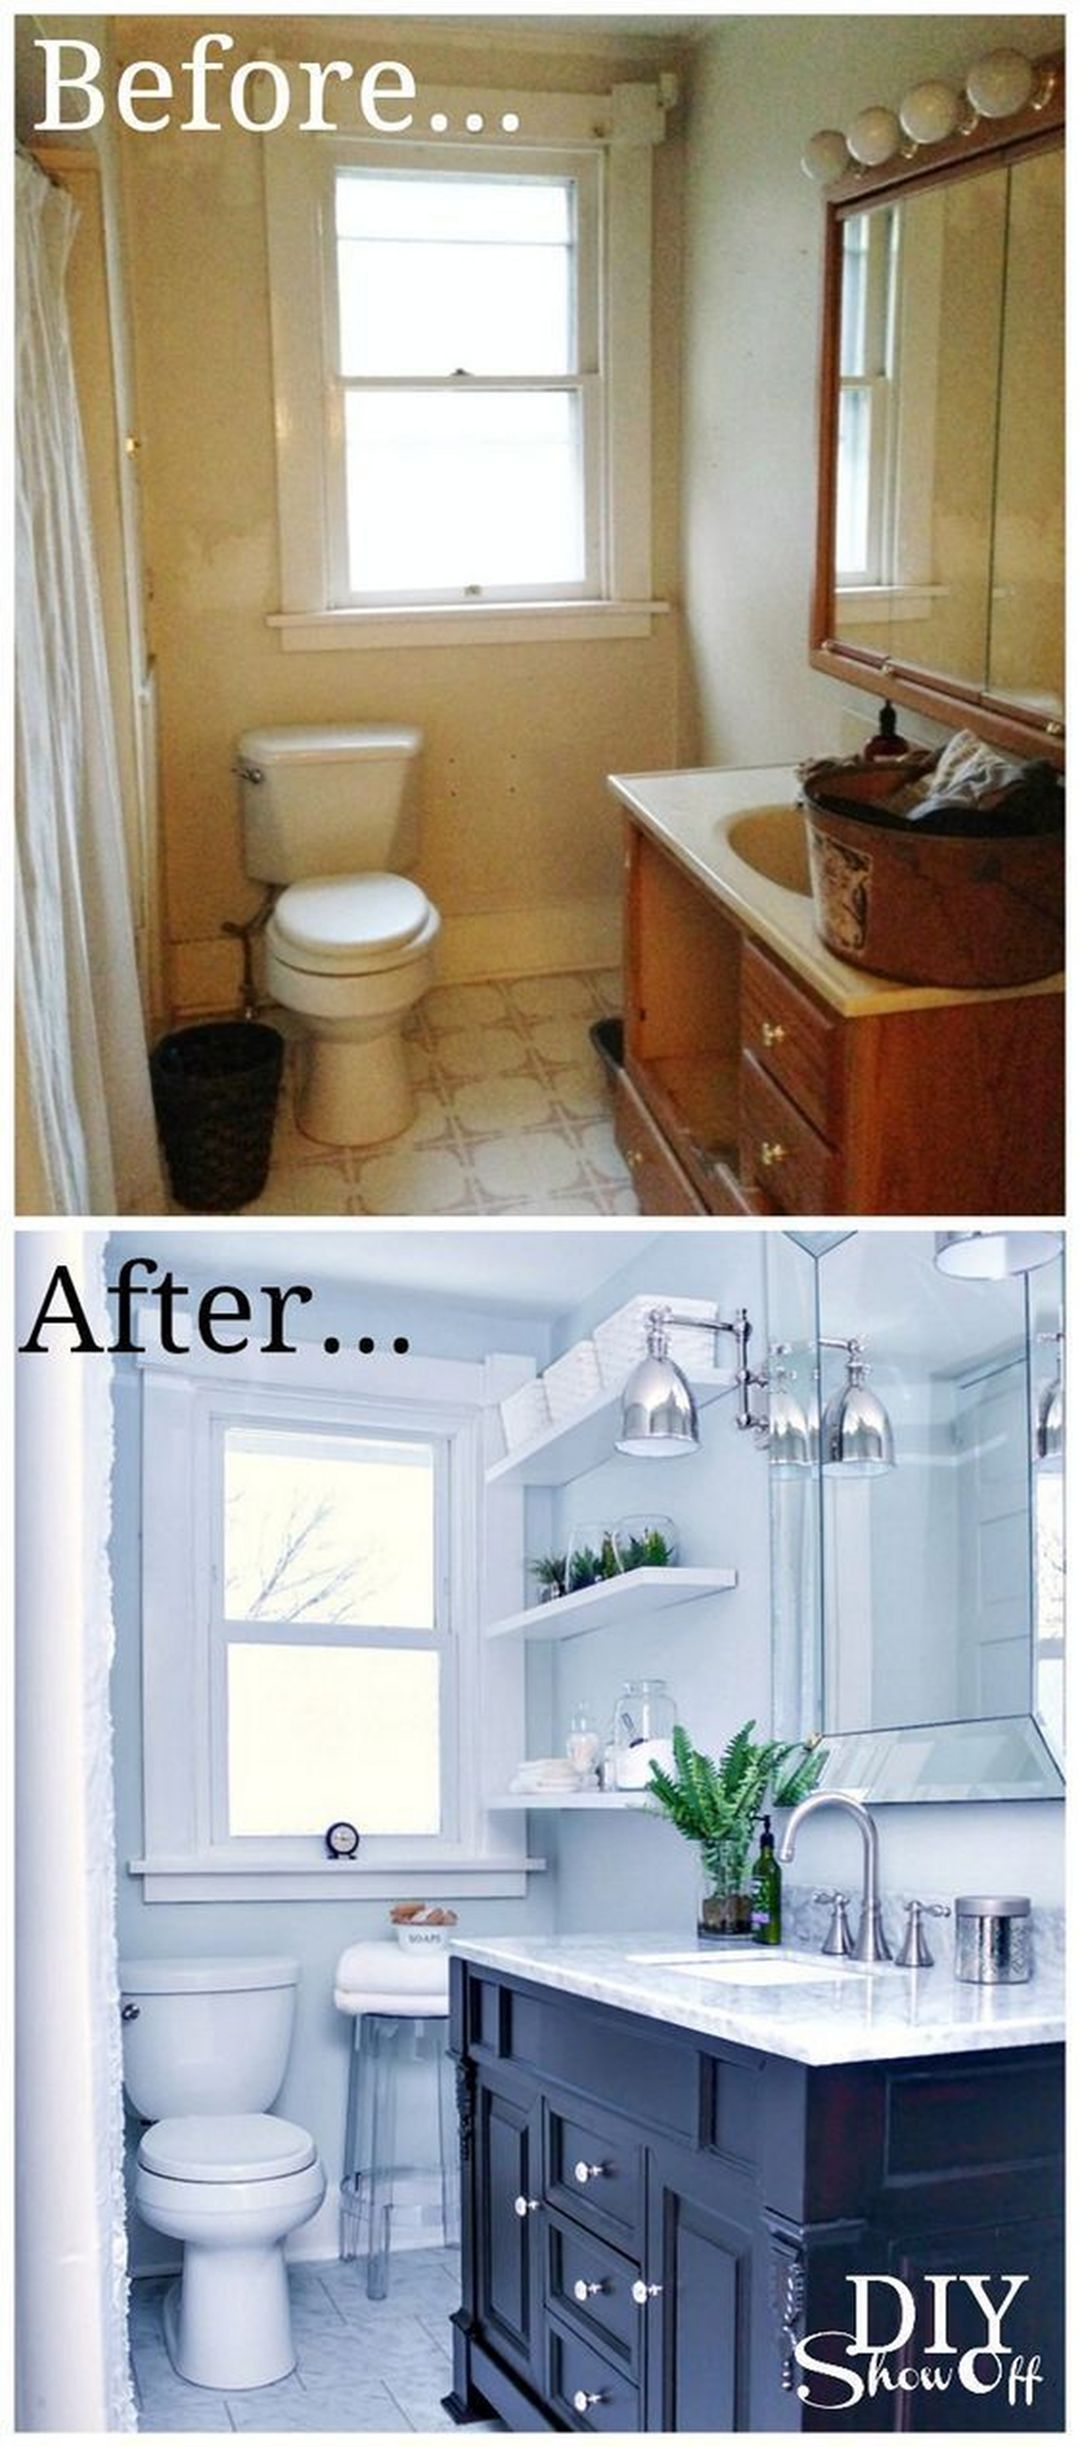 On A Budget Apartment Bathroom Renovation Before and After: 30 Best Ideas images